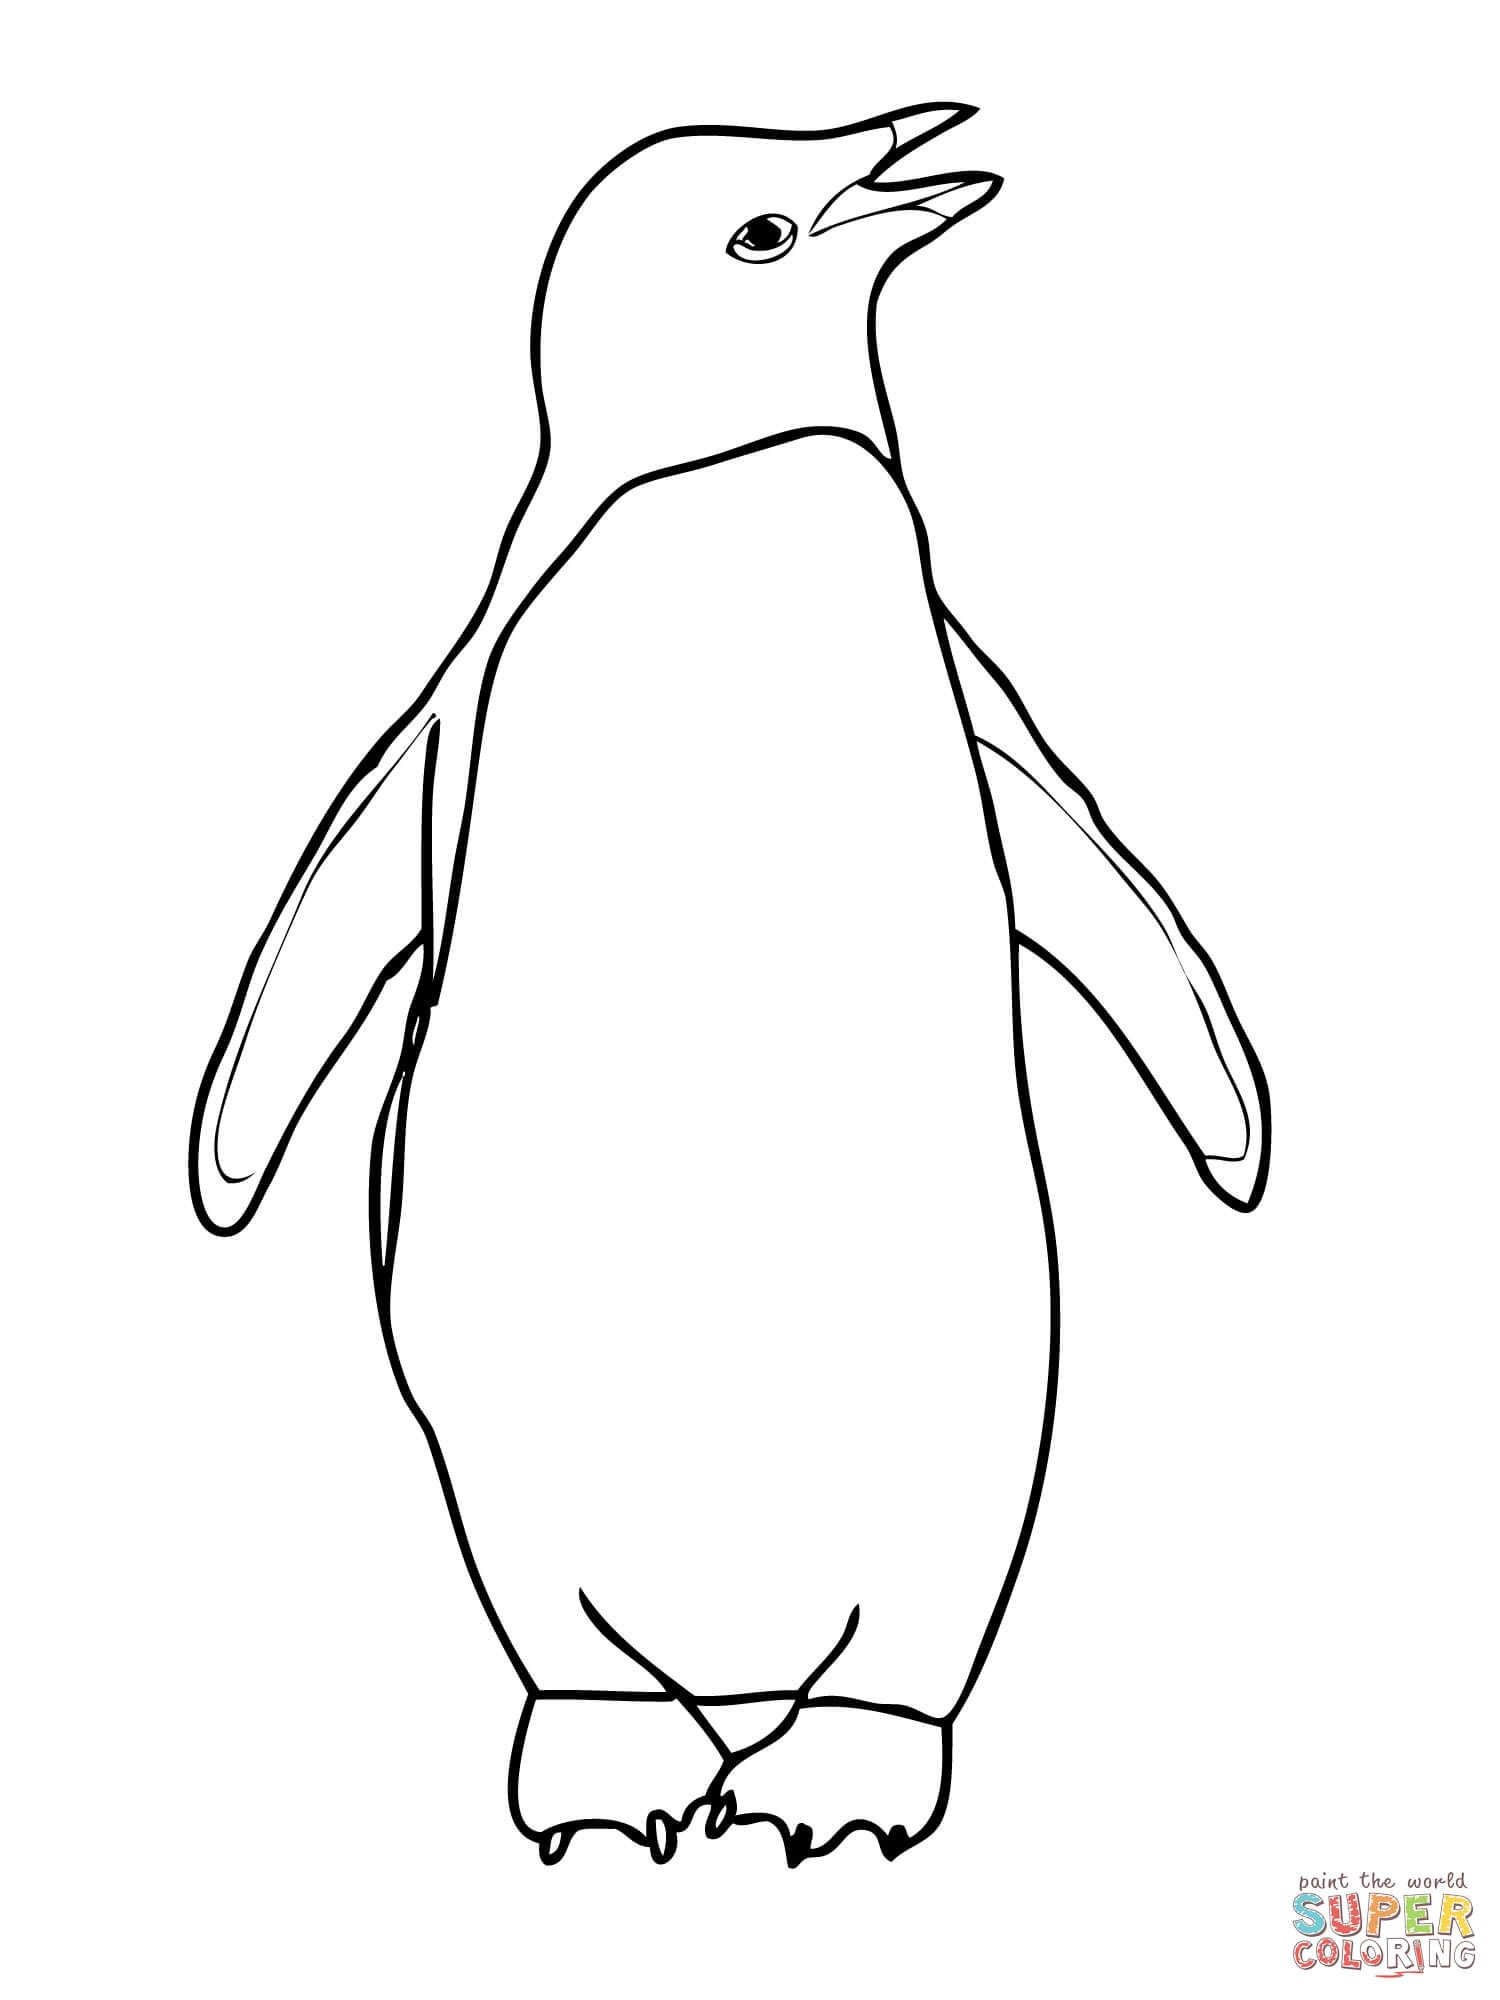 Adelie Penguin coloring page Free Printable Coloring